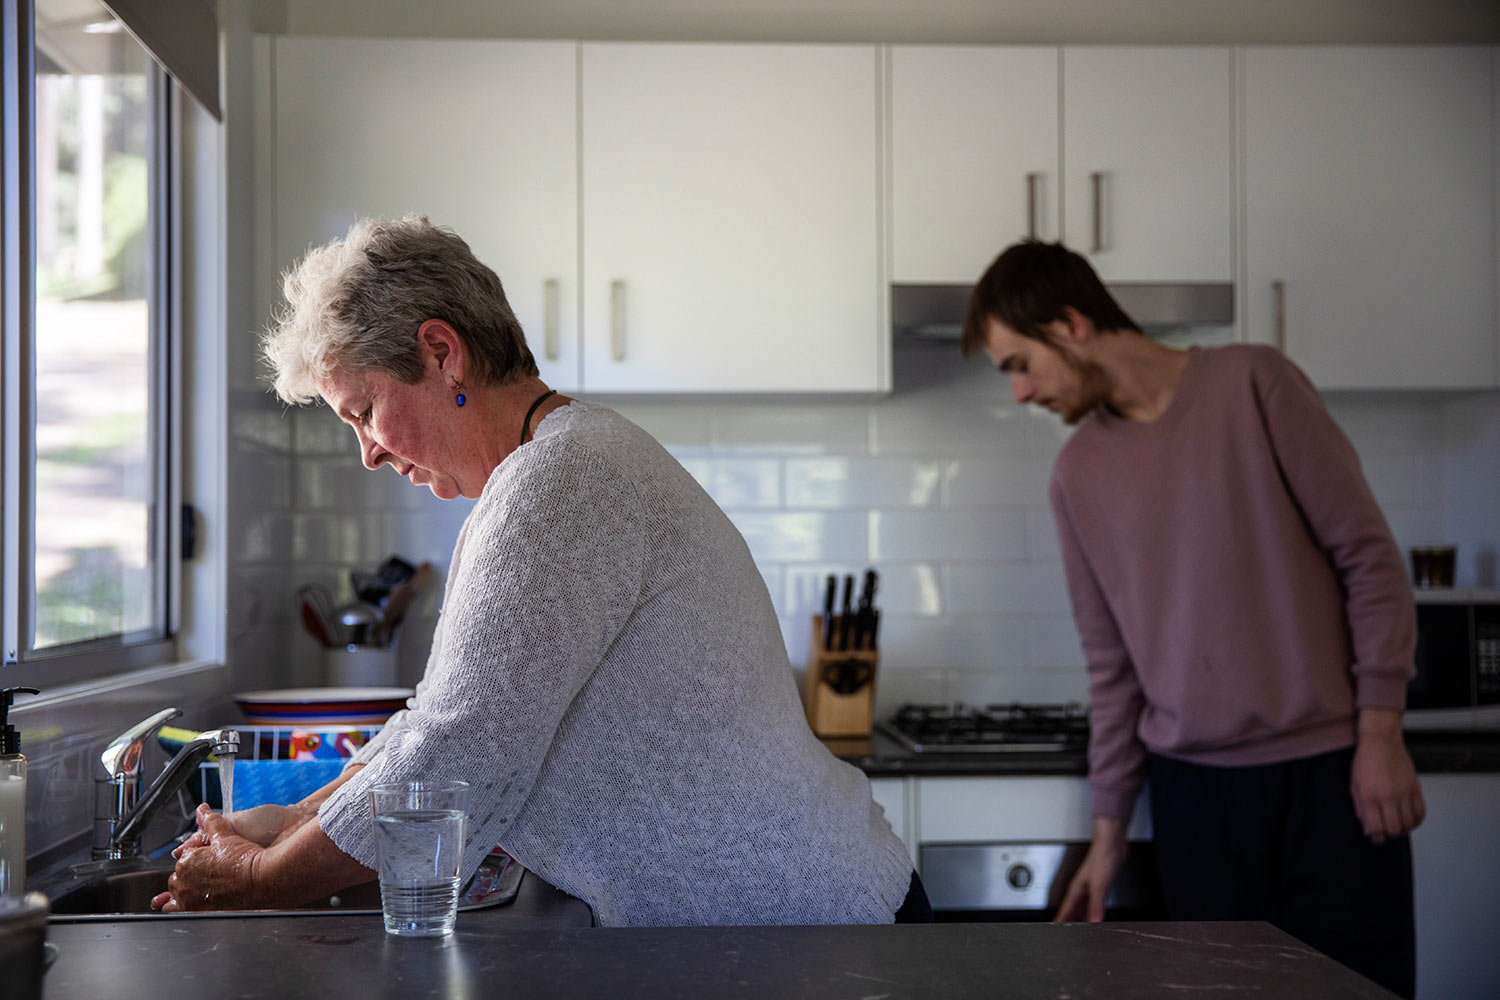 her son, Sam, return to her home for the first time since he last overdosed there three weeks ago, in Fountaindale, Central Coast, Australia, Friday, July 19, 2019. (AP Photo/David Goldman)